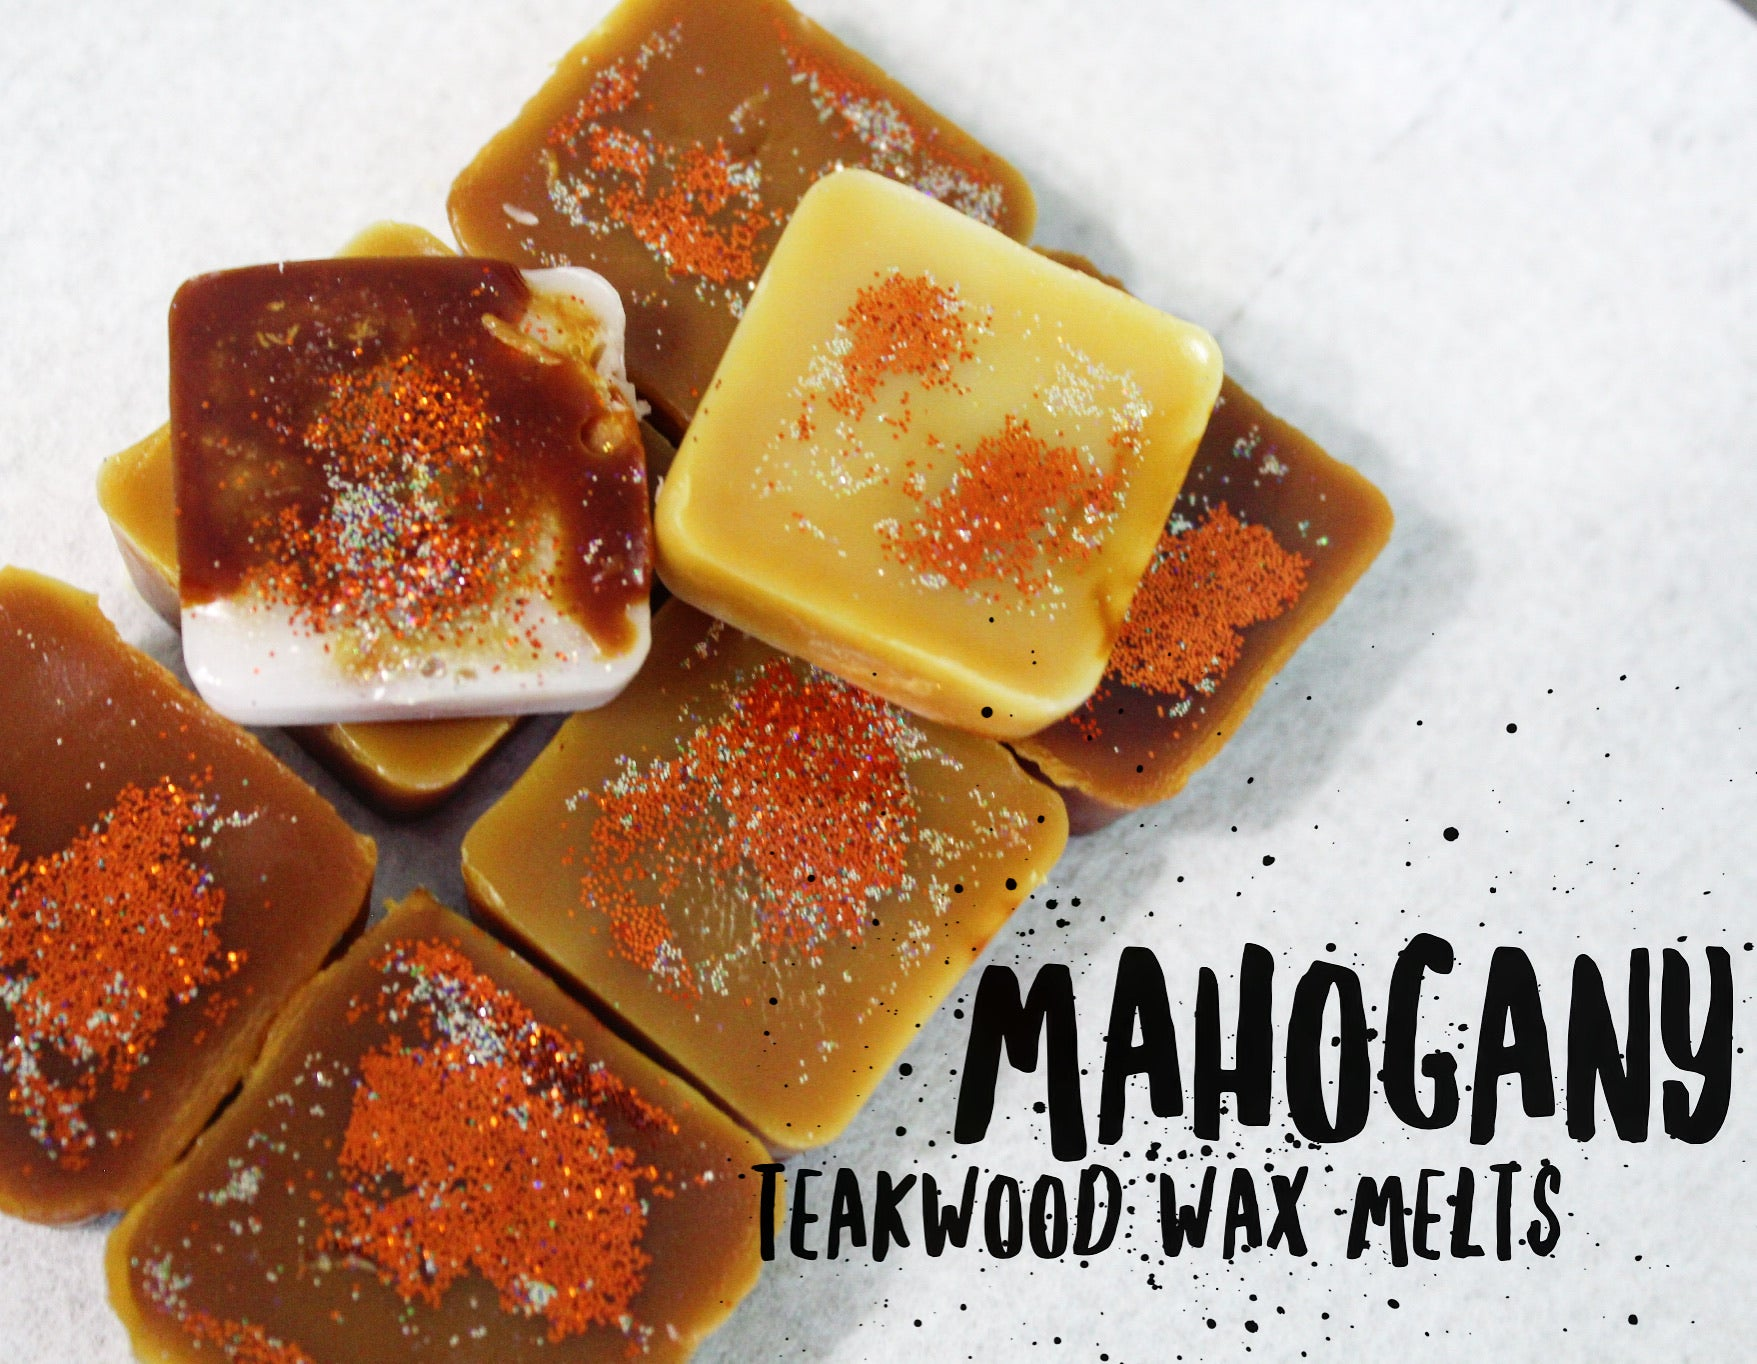 Wax melt rounds and squares